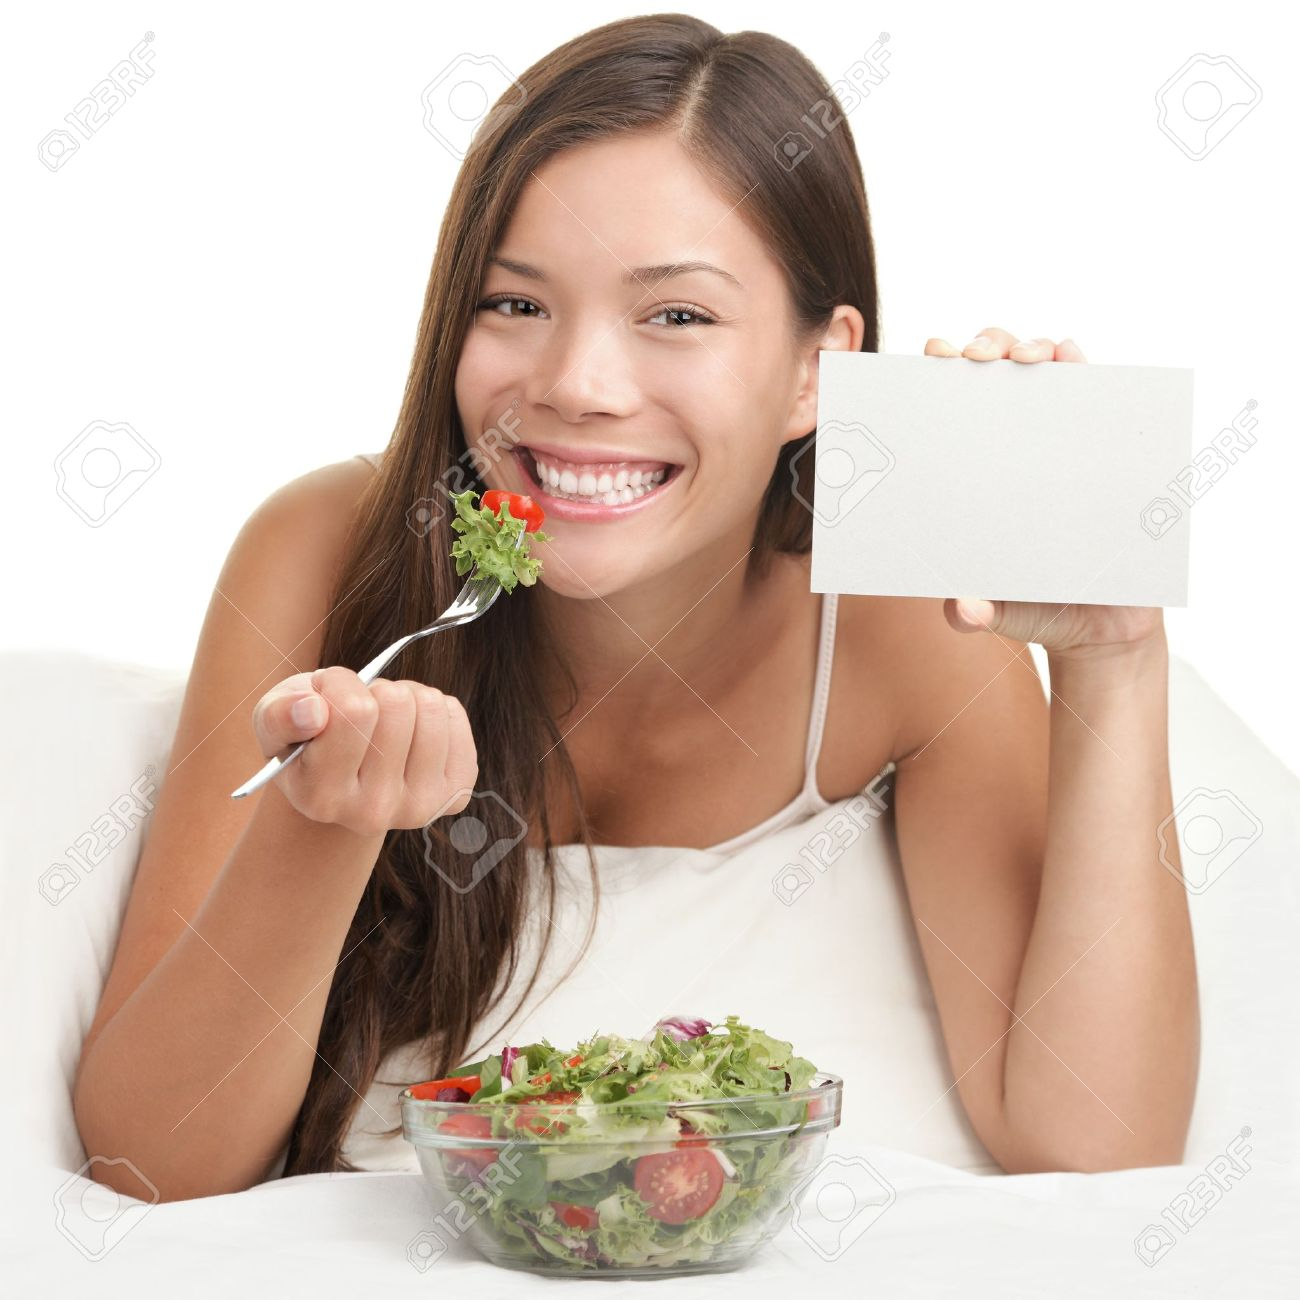 Salad copyspace. Woman eating salad showing blank sign with copy space. Healthy eating concept with young asian woman smiling looking at camera. Room for text. Stock Photo - 8361936